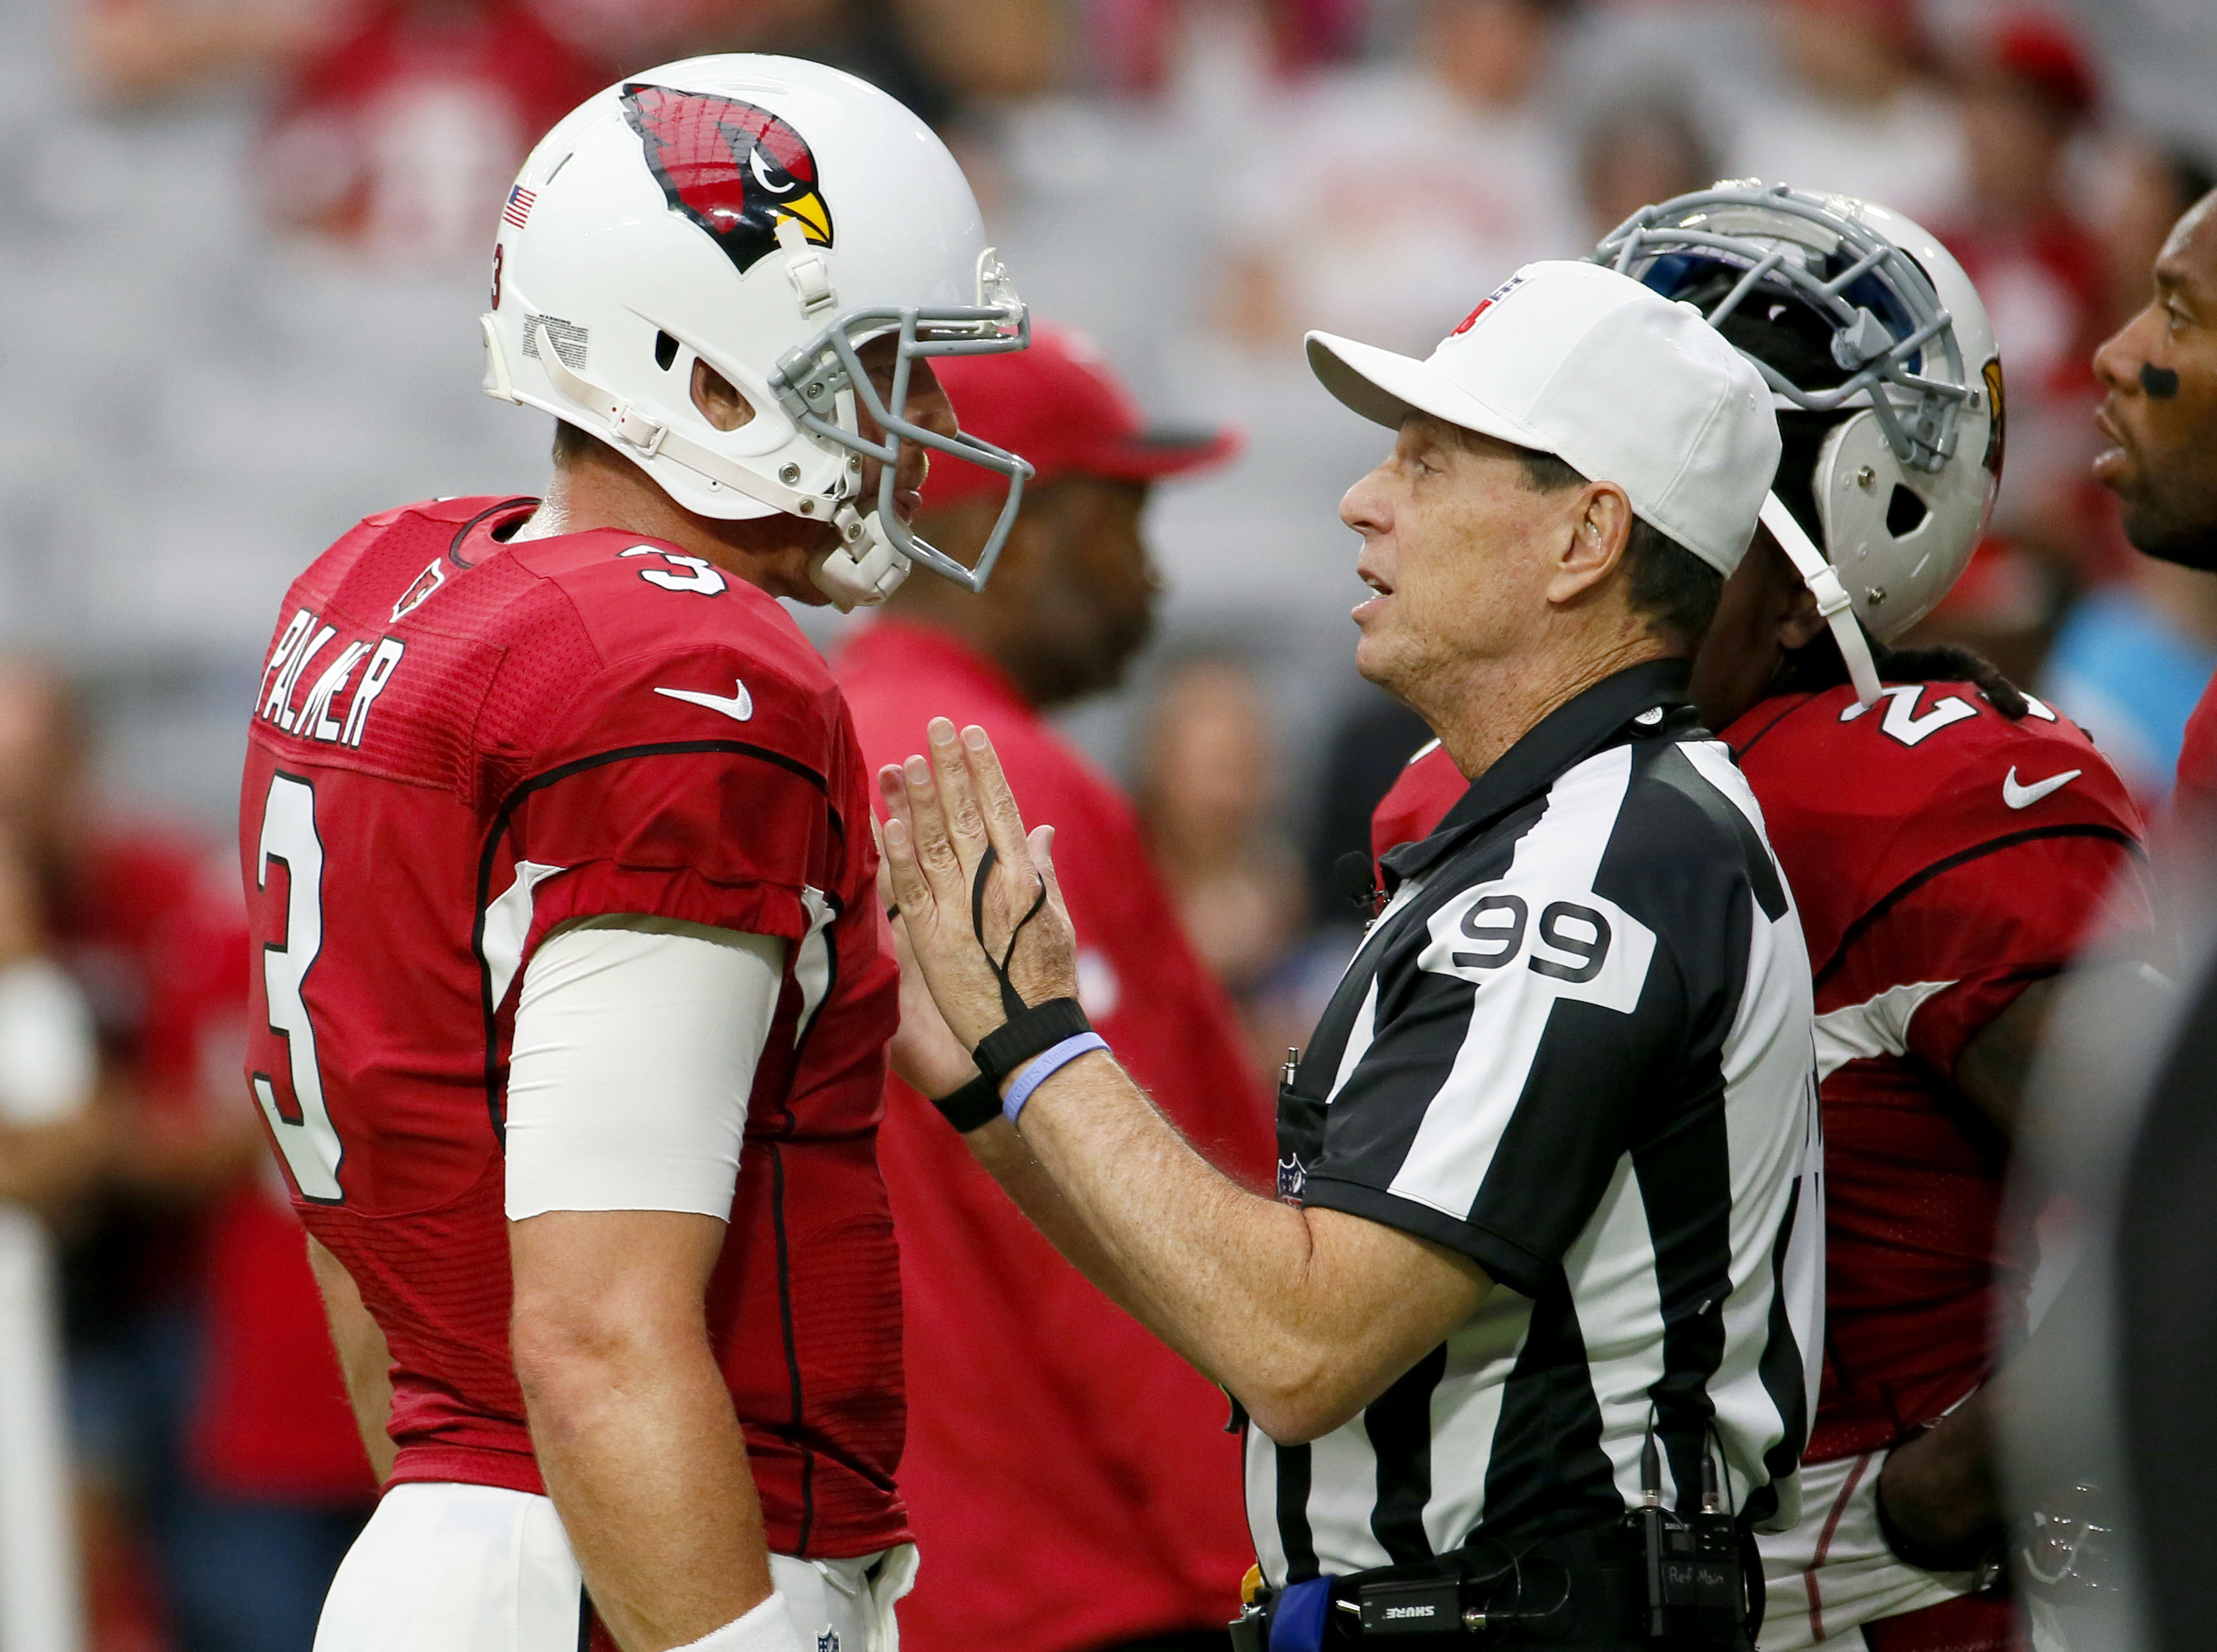 FILE - In this Sept. 27, 2015, file photo, Arizona Cardinals quarterback Carson Palmer (3) talks with referee Tony Corrente (99) prior to an NFL football game against the San Francisco 49ers, in Glendale, Ariz. Three games into the NFL season, yellow flag